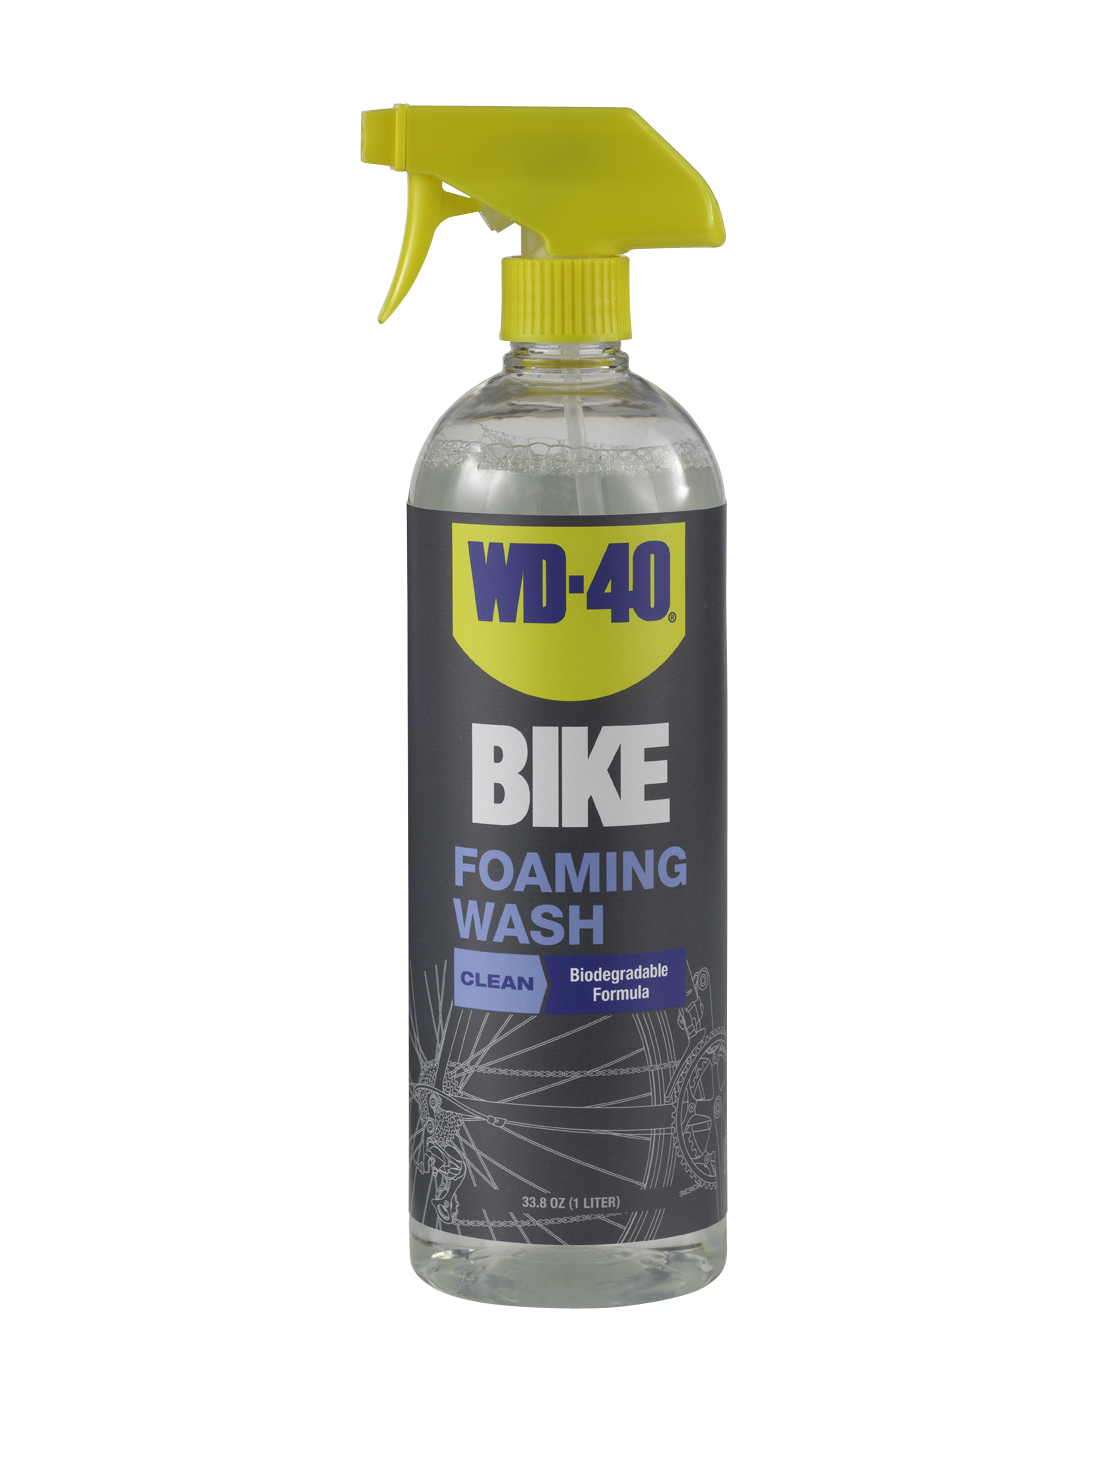 WD-40 BIKE - foaming wash